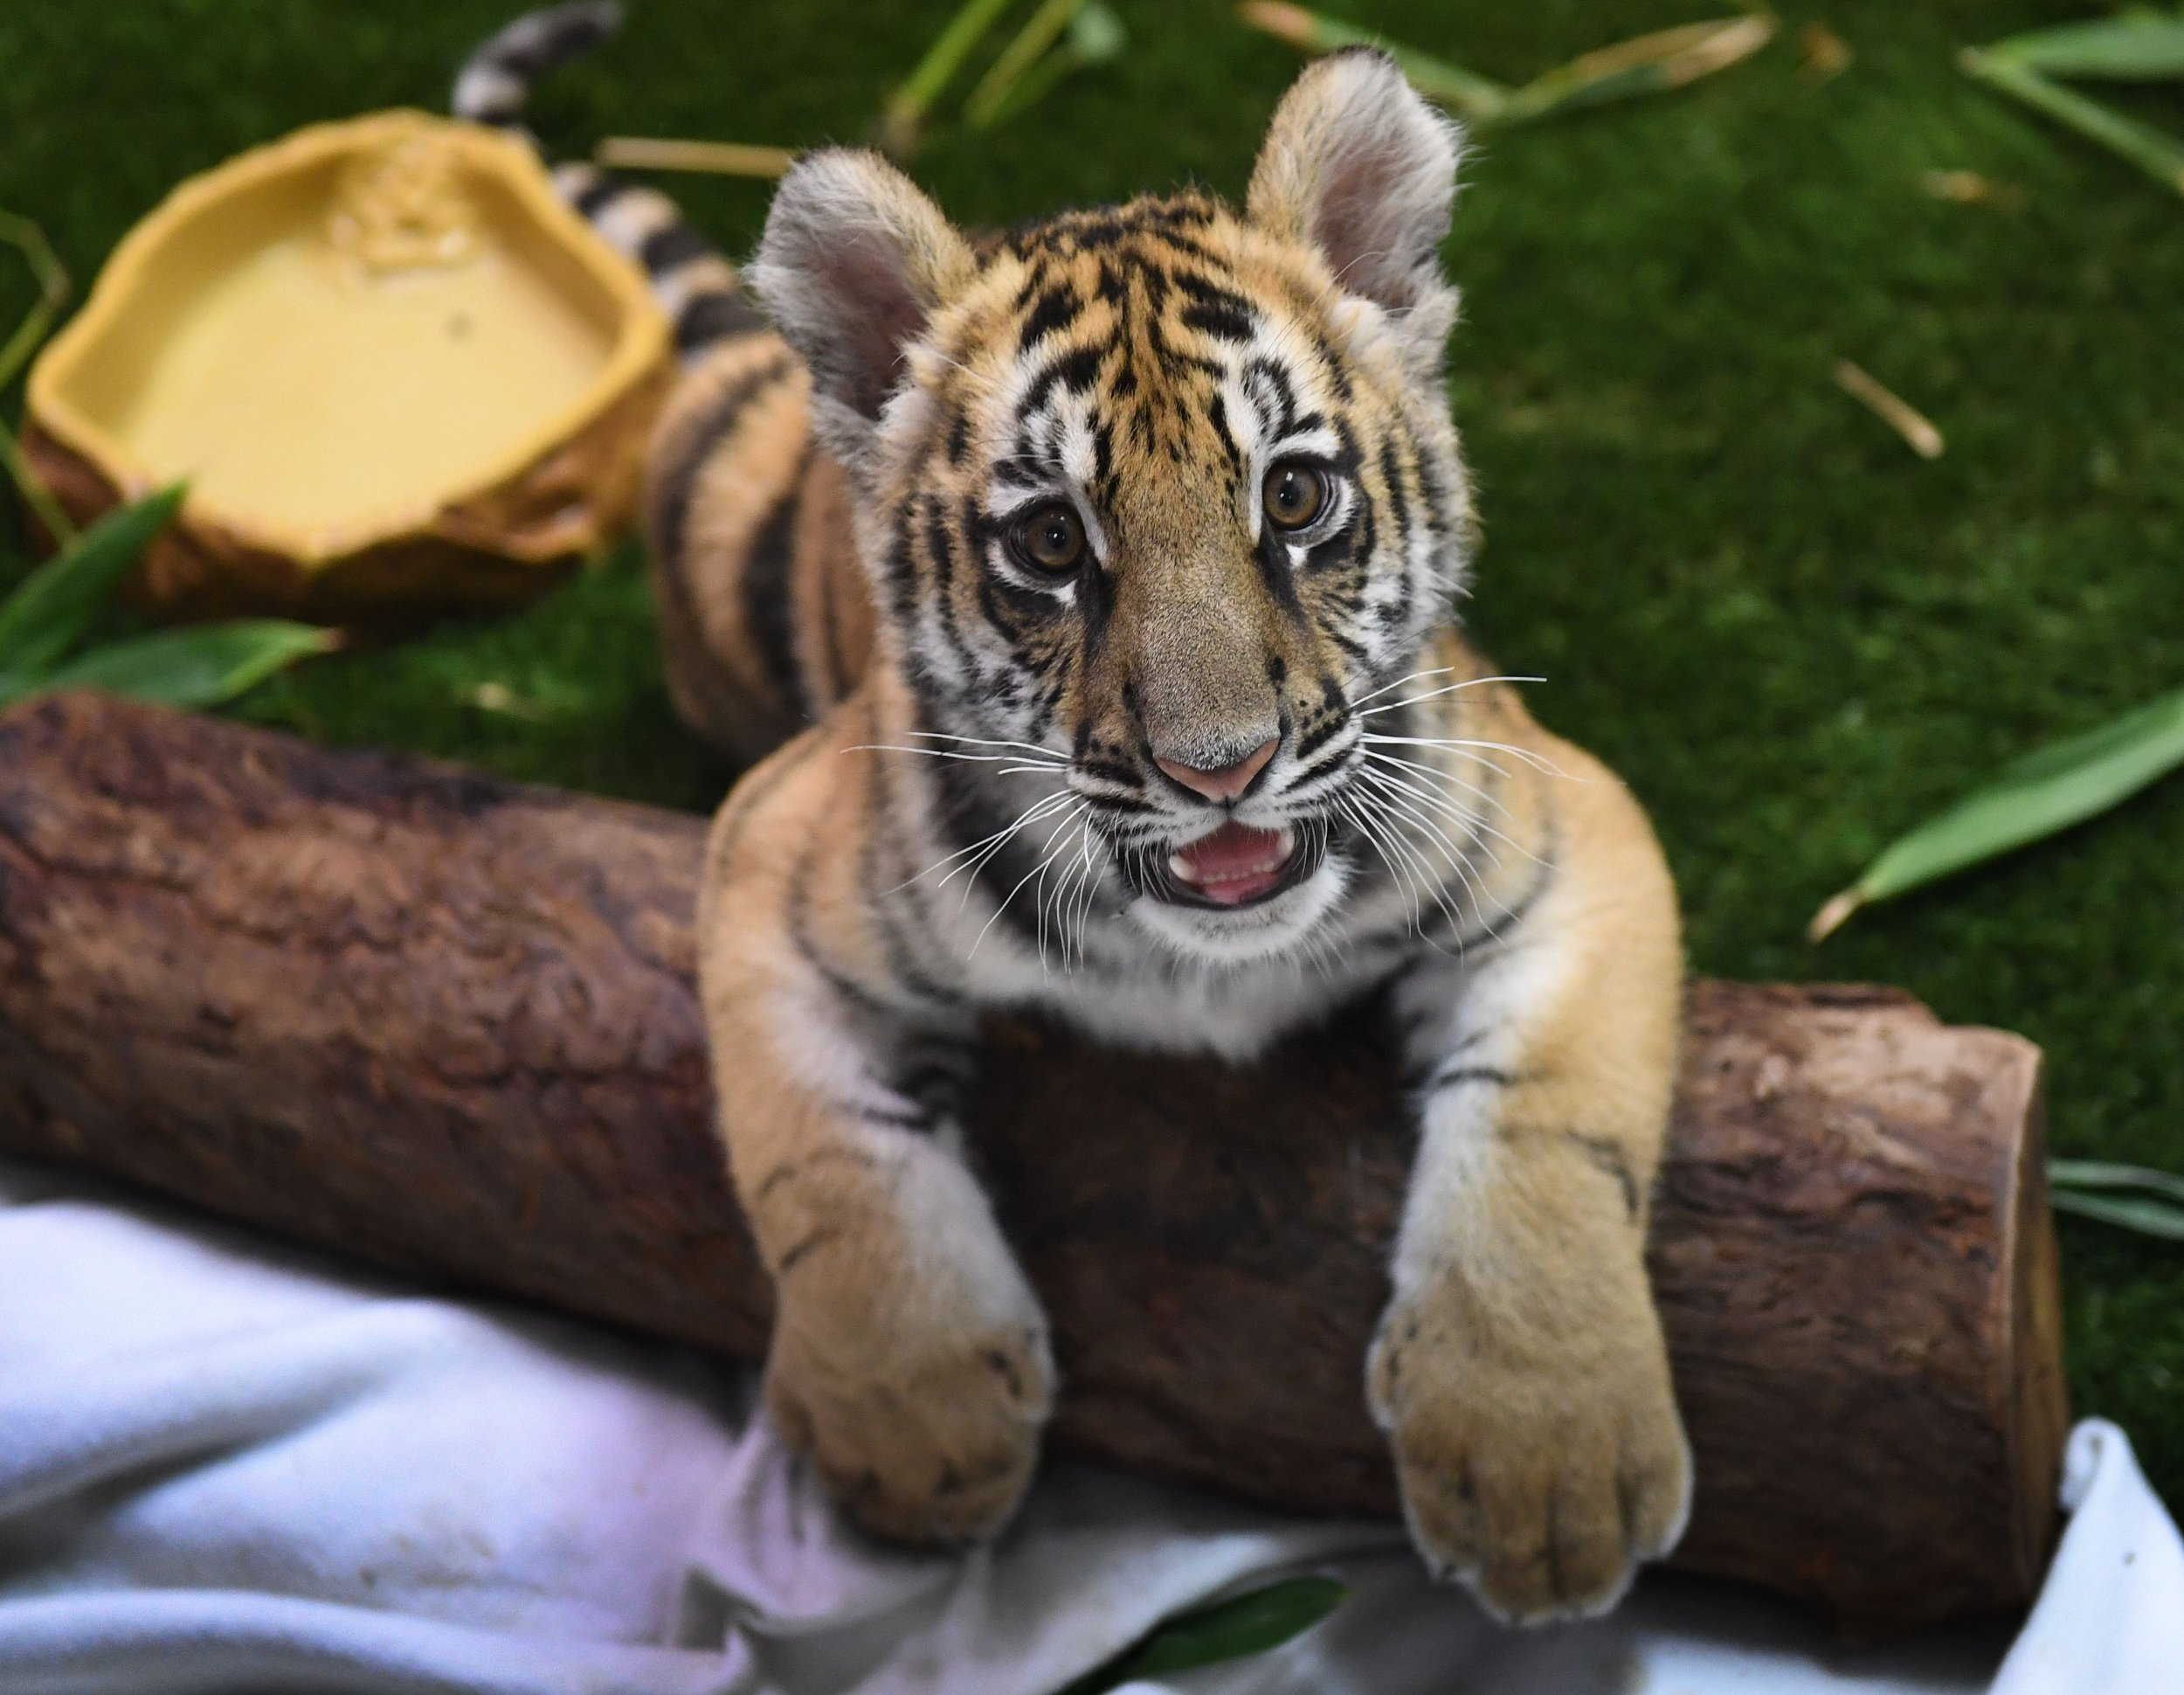 Moka tiger cub animal smuggling Mexico